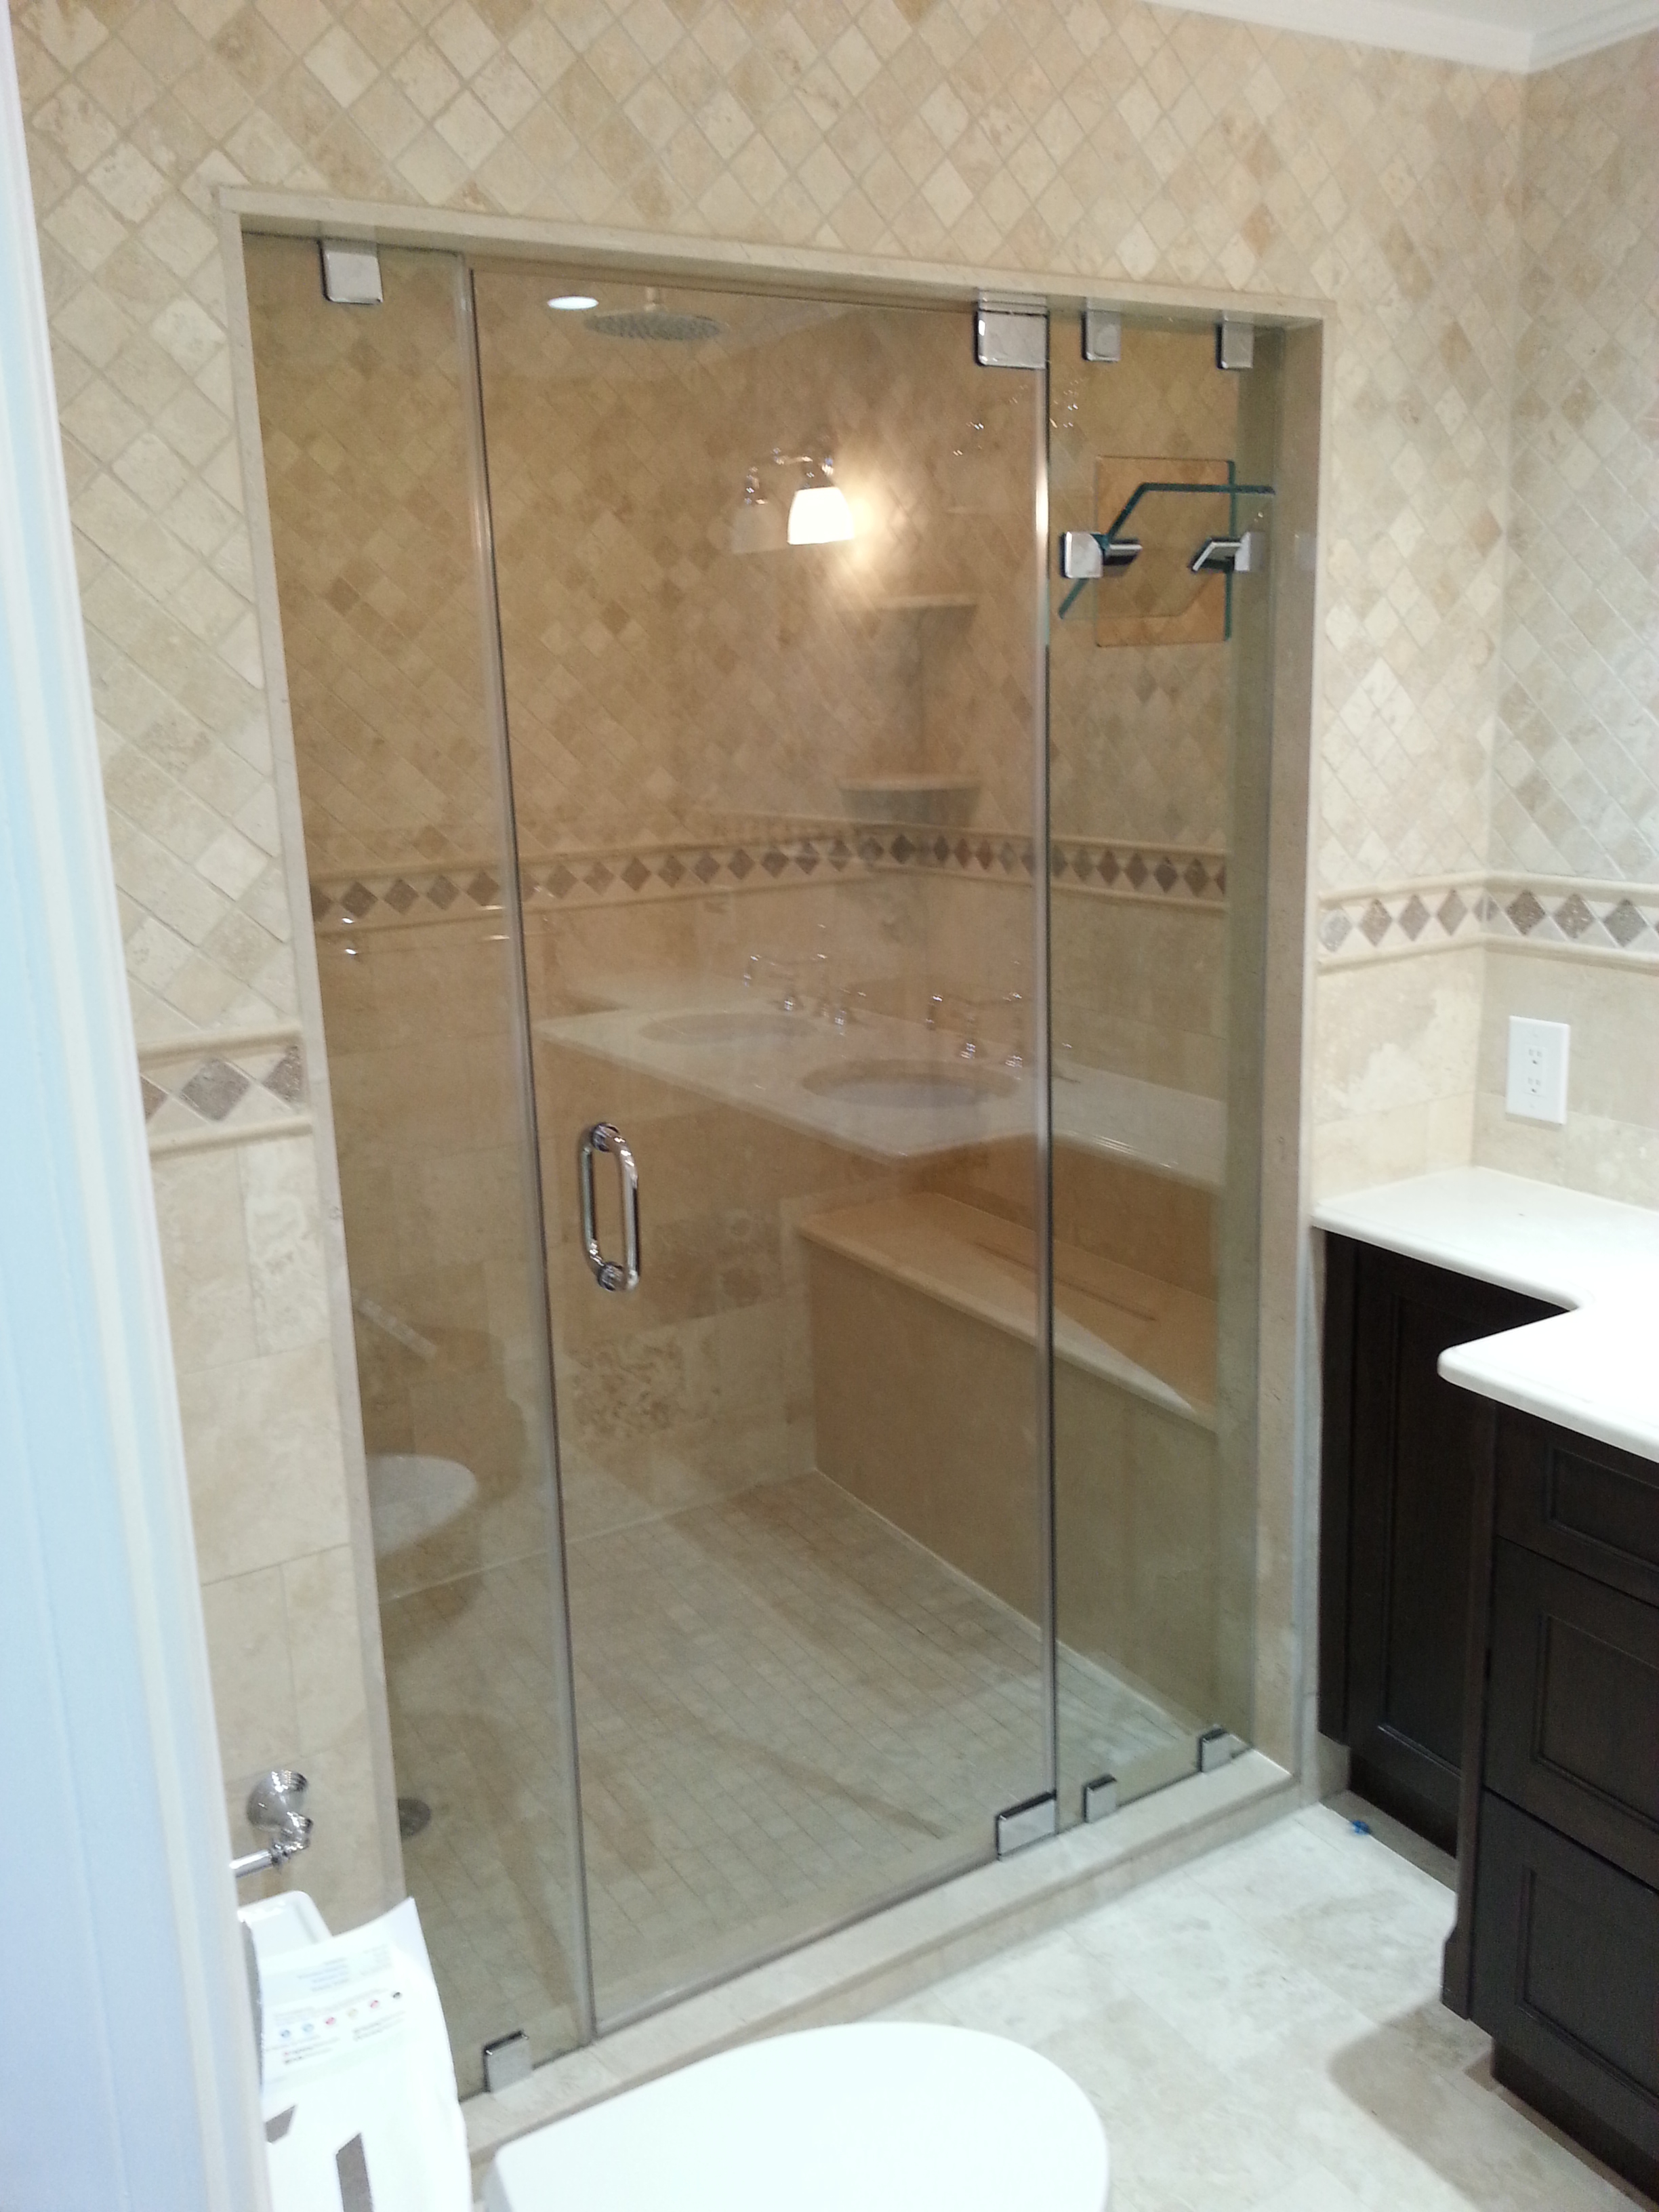 Great neck glass shower doors coupons near me in great for Glass shower doors near me